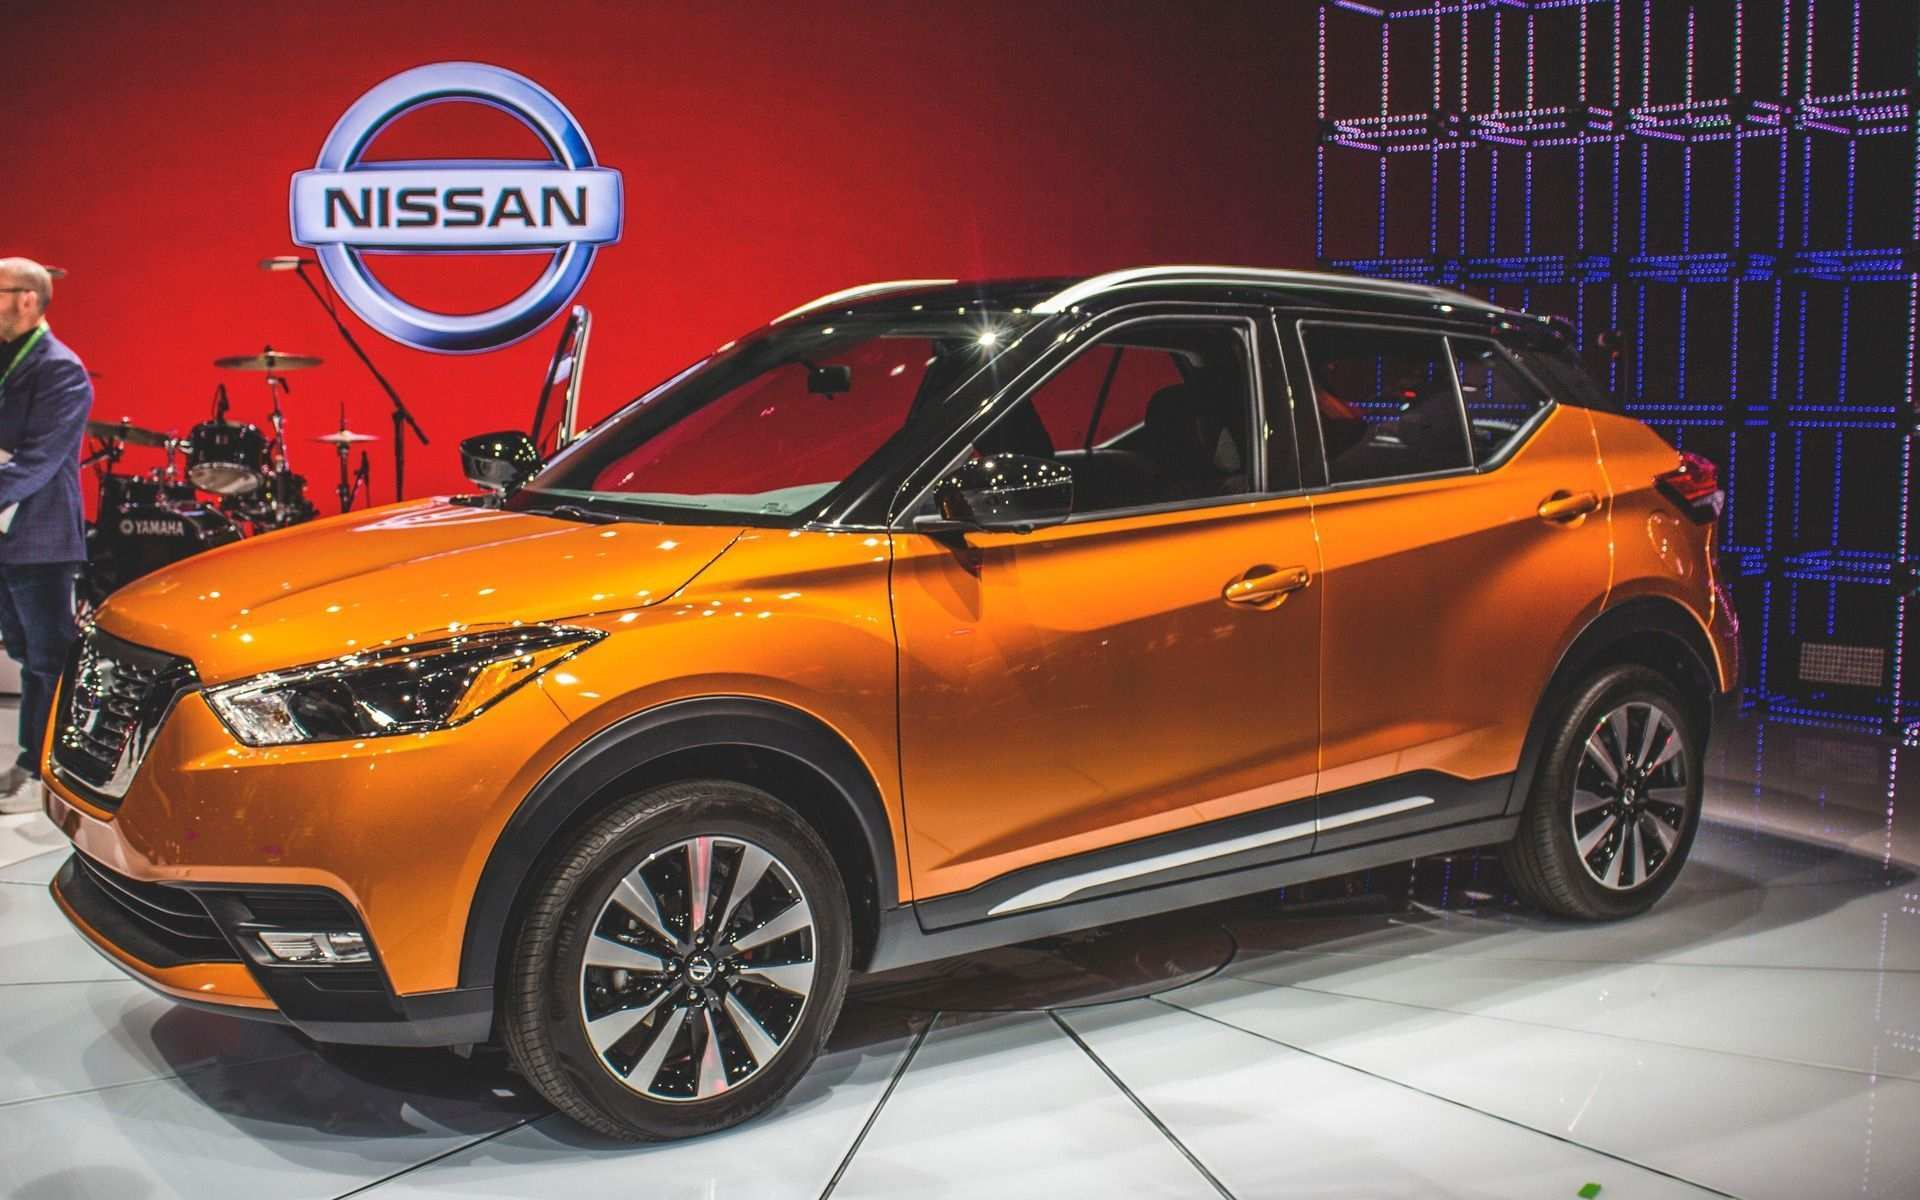 46 Great Nissan Kicks 2019 Preco Specs And Review New Concept with Nissan Kicks 2019 Preco Specs And Review